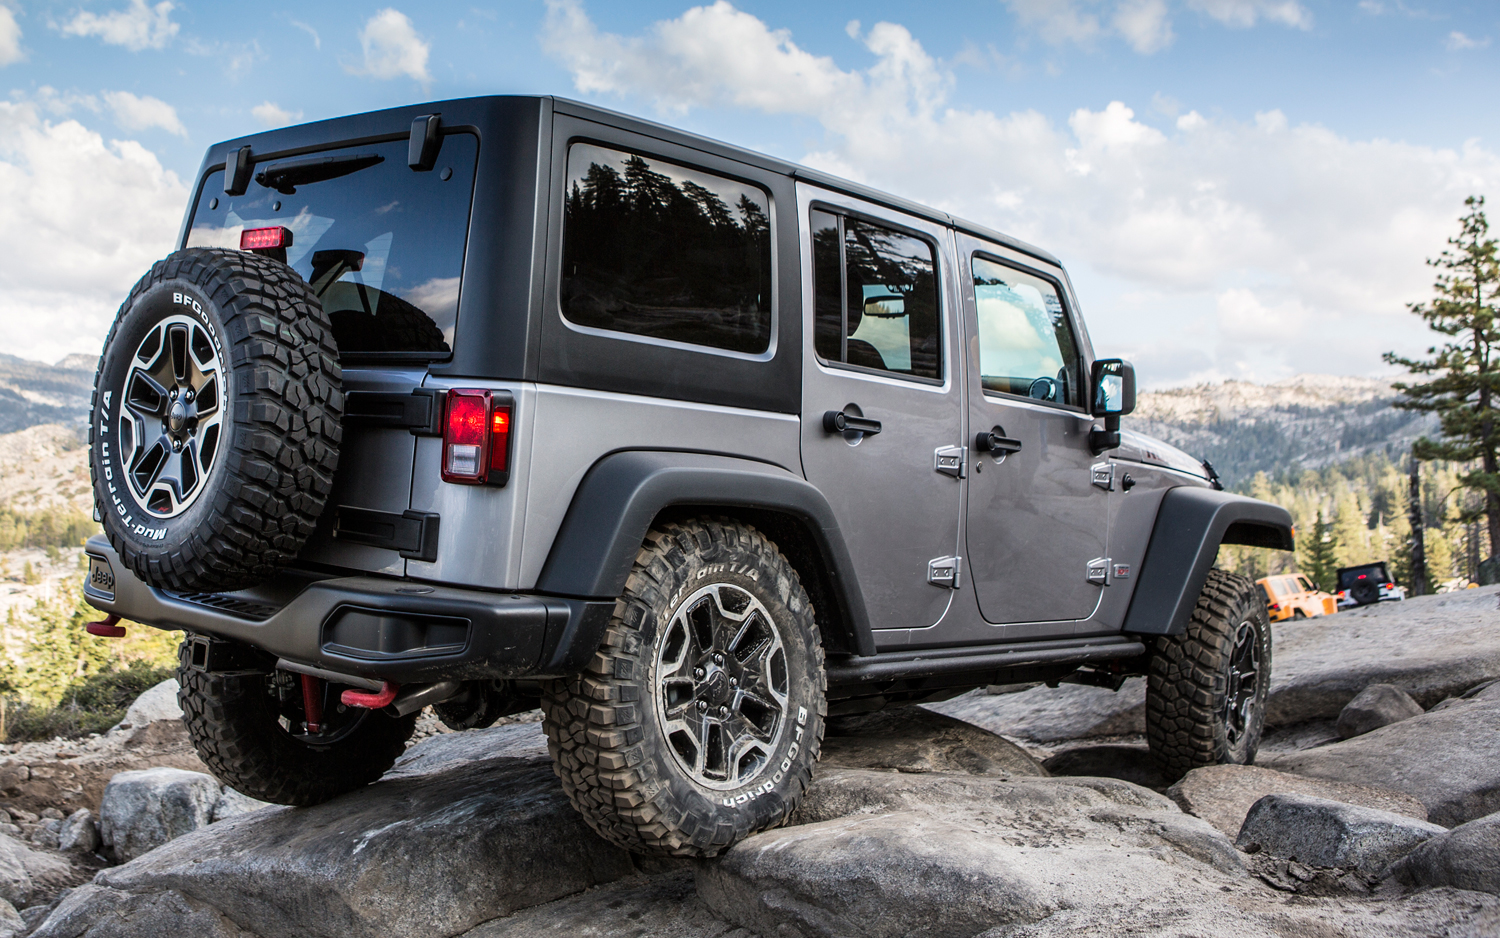 Jeep wrangler sold out automotive car manufacture